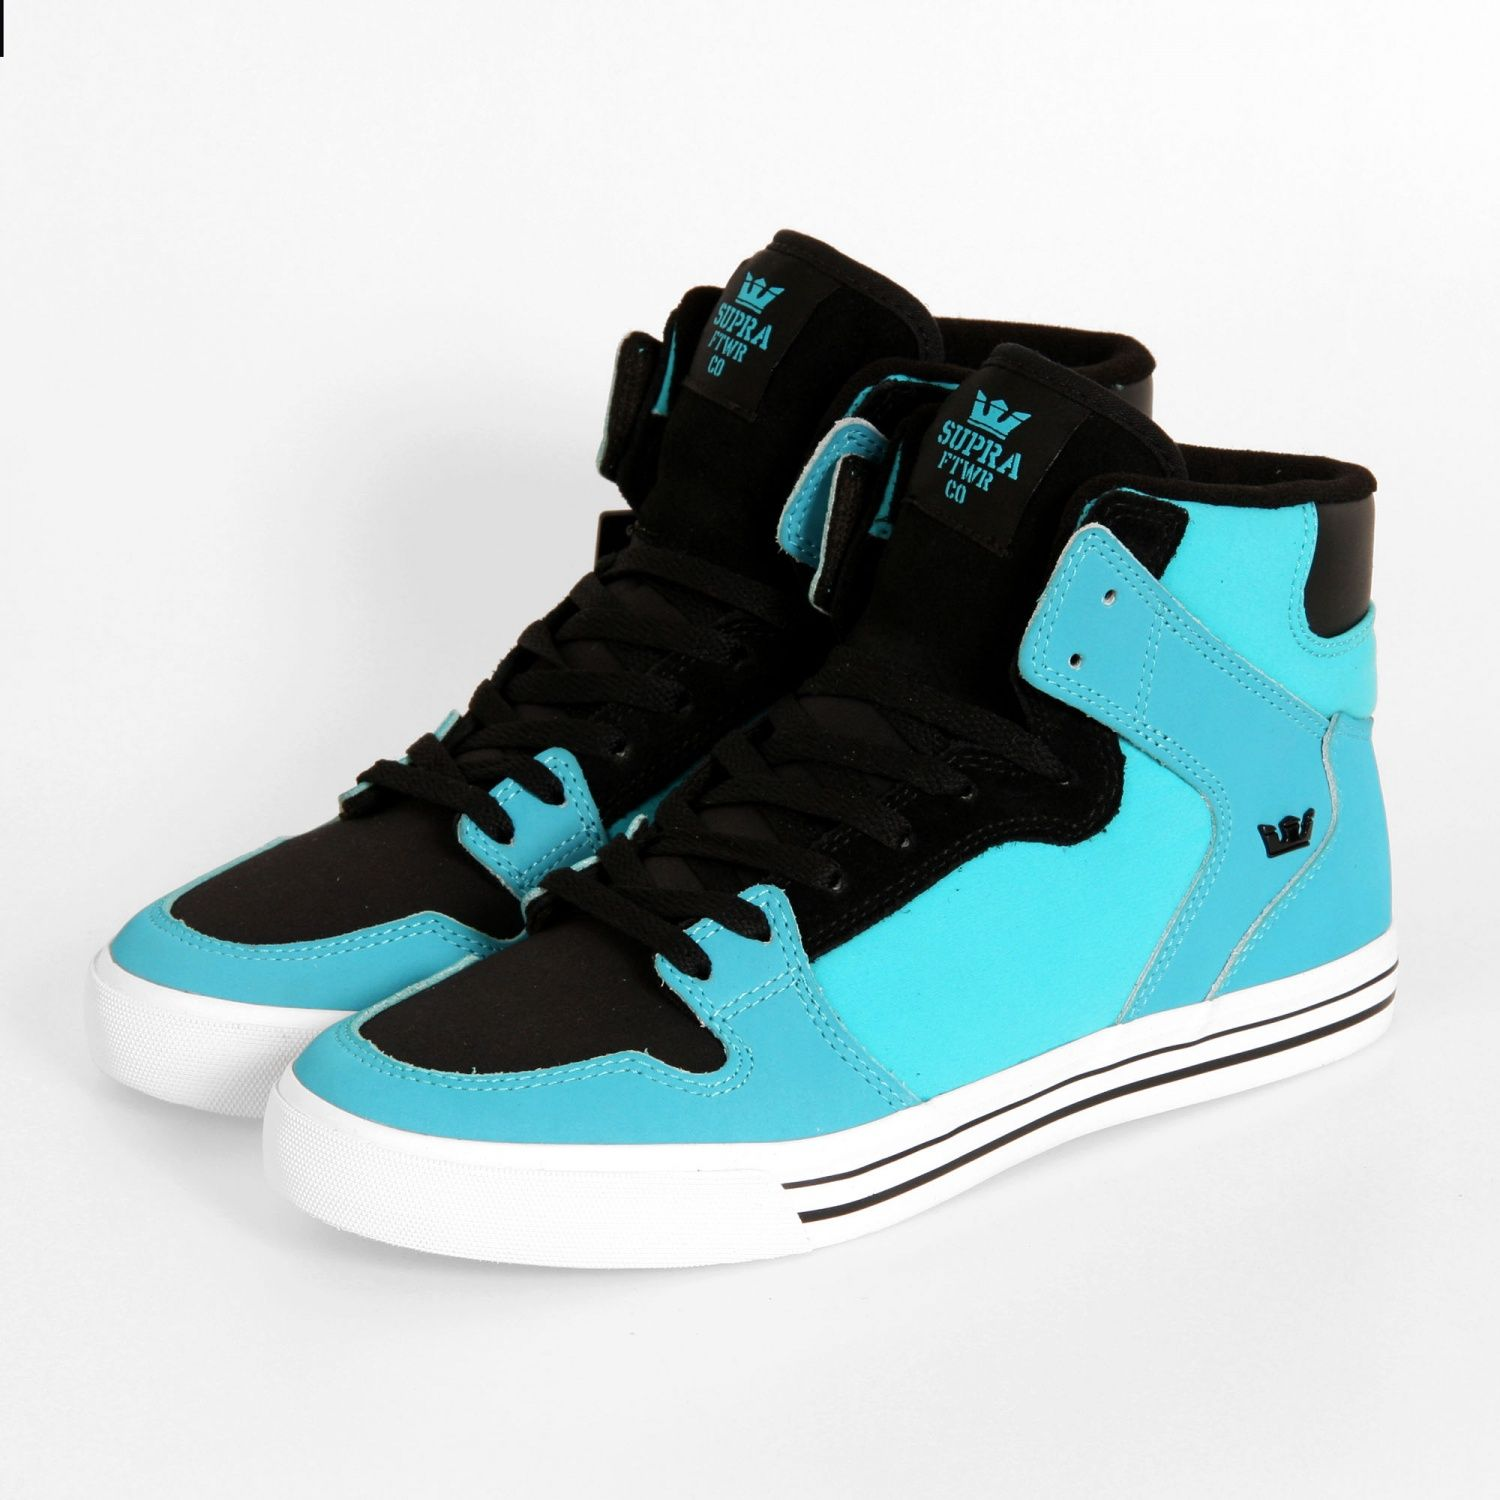 Supra Shoes - Vaider (Blue Black White)   shoes   high tops   women s shoes 1c57824129